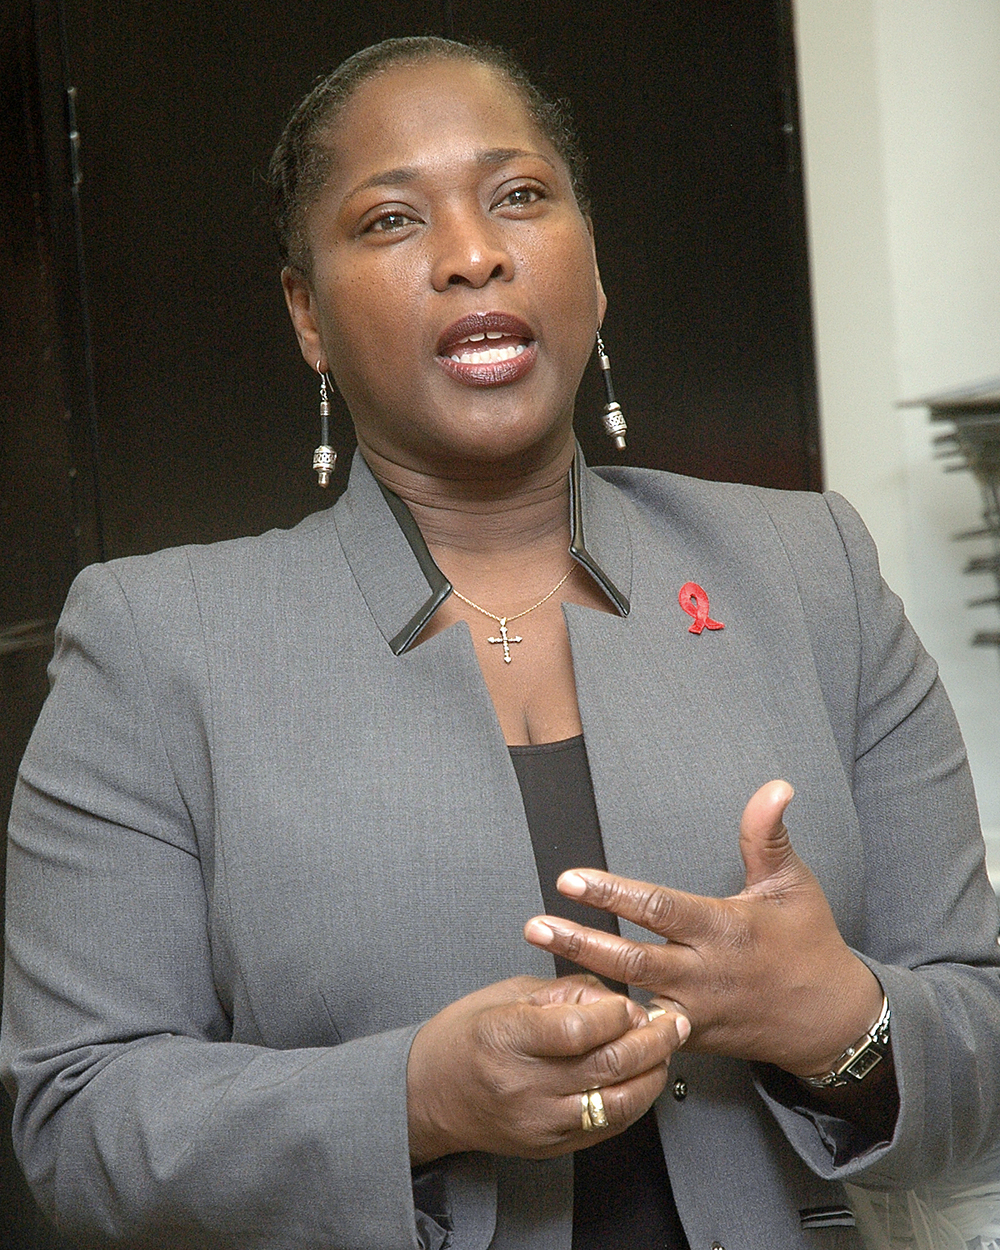 AIDS In Our Community: Reading of Names - Brenda Starks-Ross, Deputy Executive Director/COO